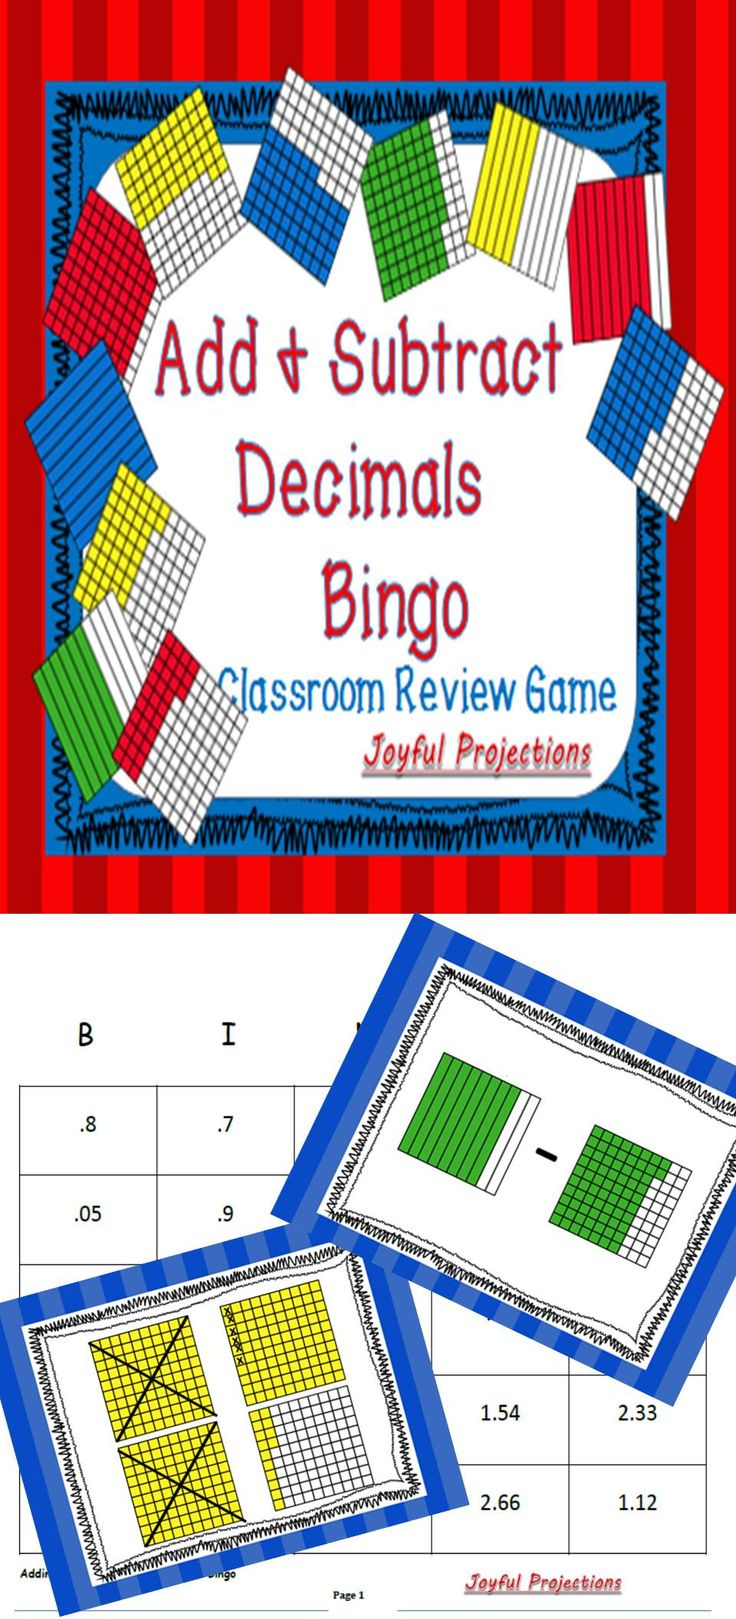 Students will complete the addition or subtraction operation on the projection and then cover the correct answer on their Bingo cards. My students beg to play, and while playing they'll complete more decimal operations in this simple game than they would on any worksheet. After playing Bingo once, a few days later we review again by racing to find answers. Both ways are a great review of adding and subtracting decimals!